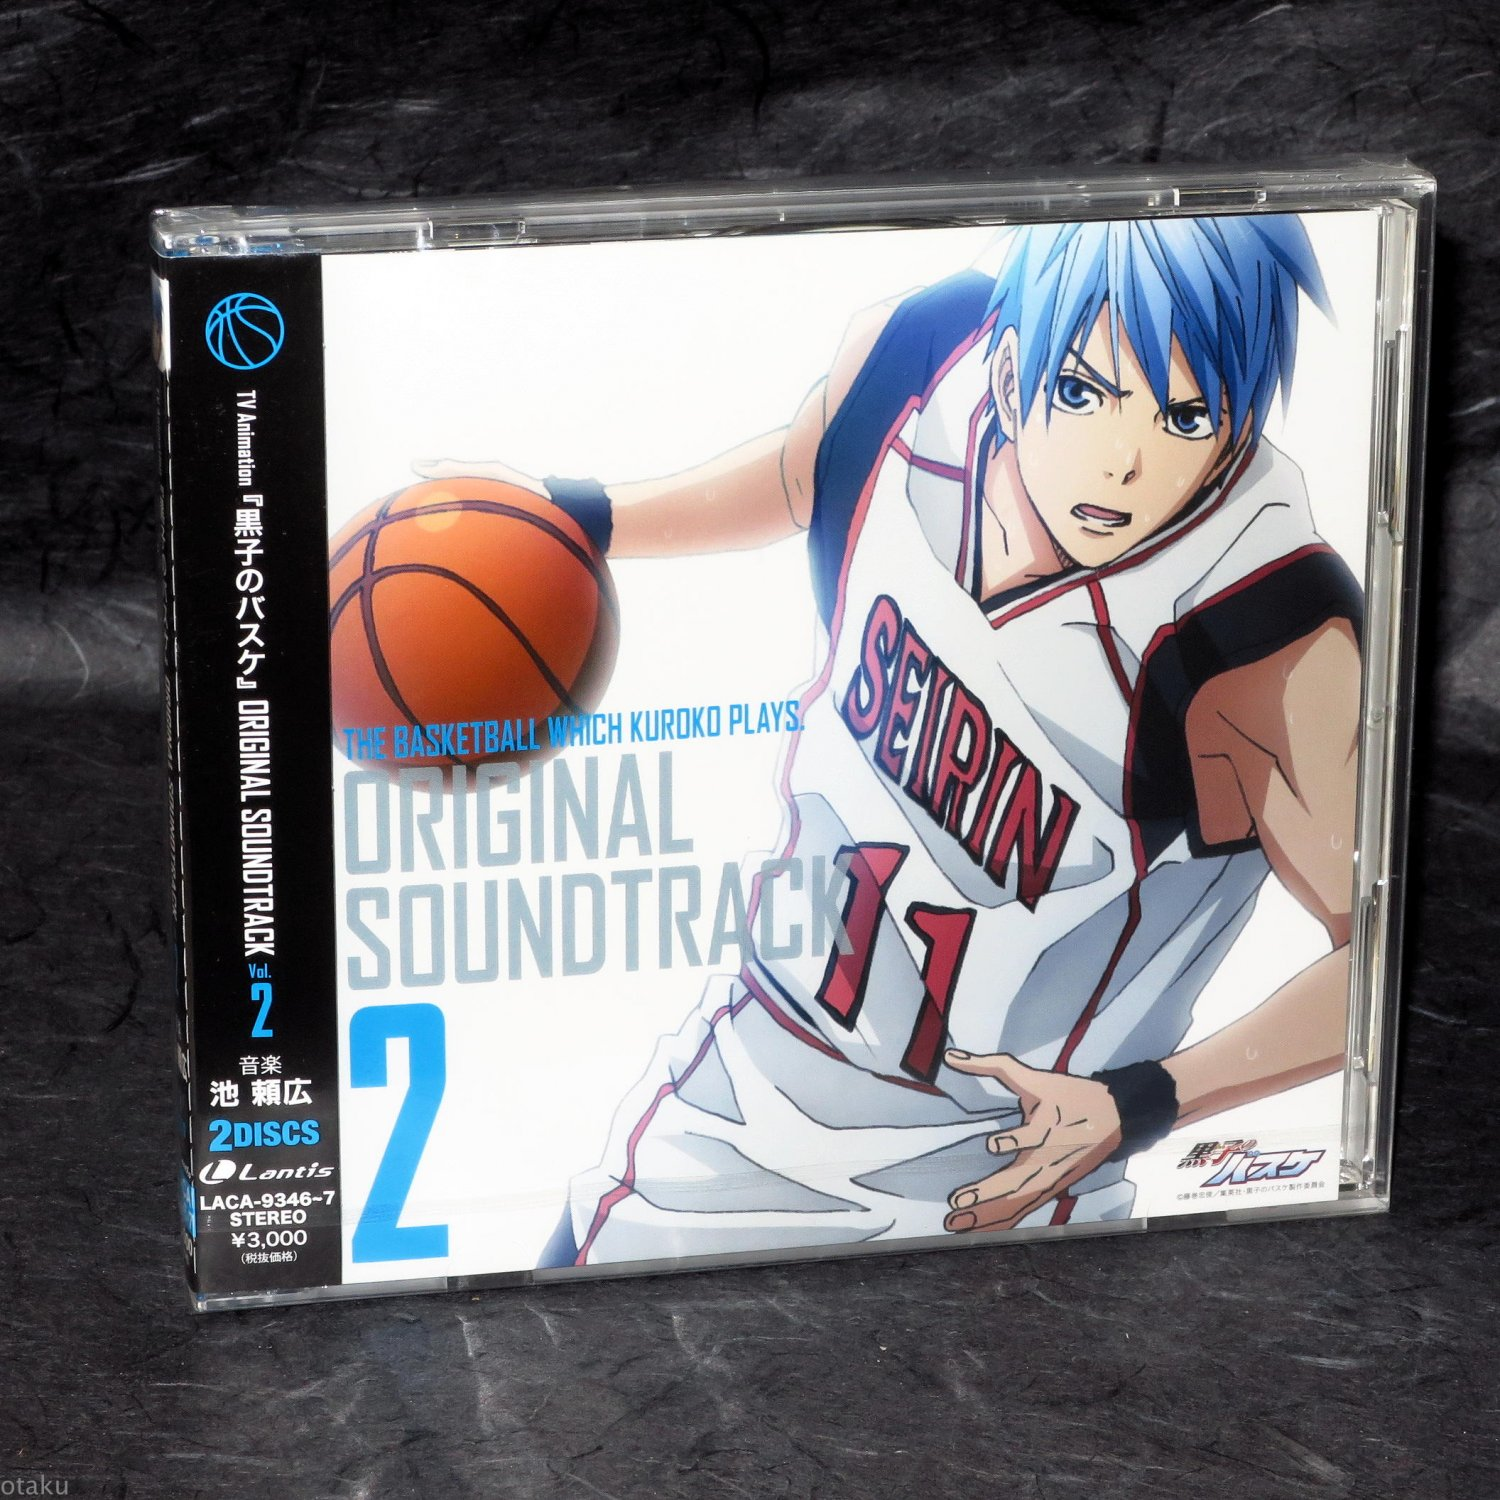 Kuroko's Basketball Kuroko Original Soundtrack Vol.2 Japan Anime Music CD NEW